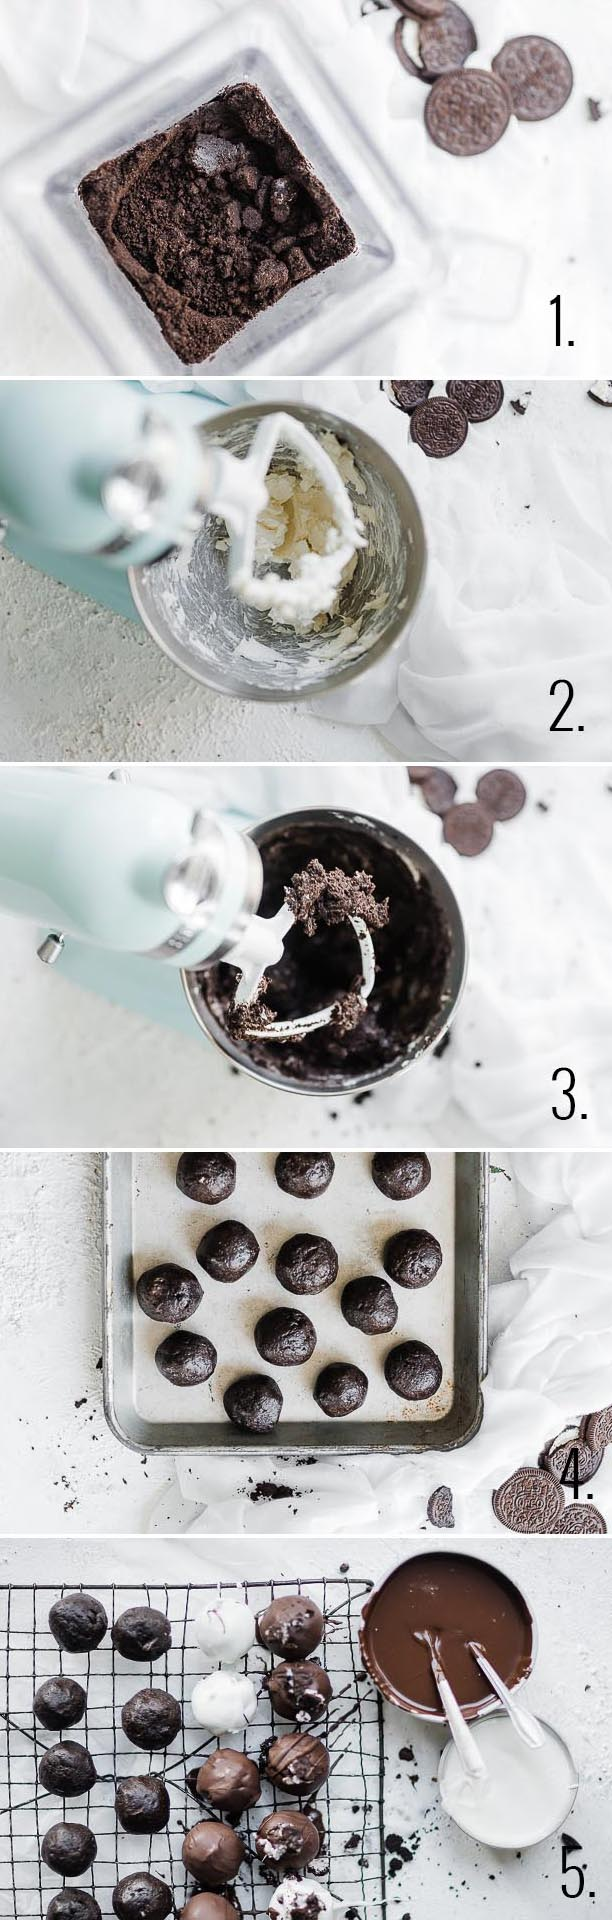 Chocolate Oreo truffle process.